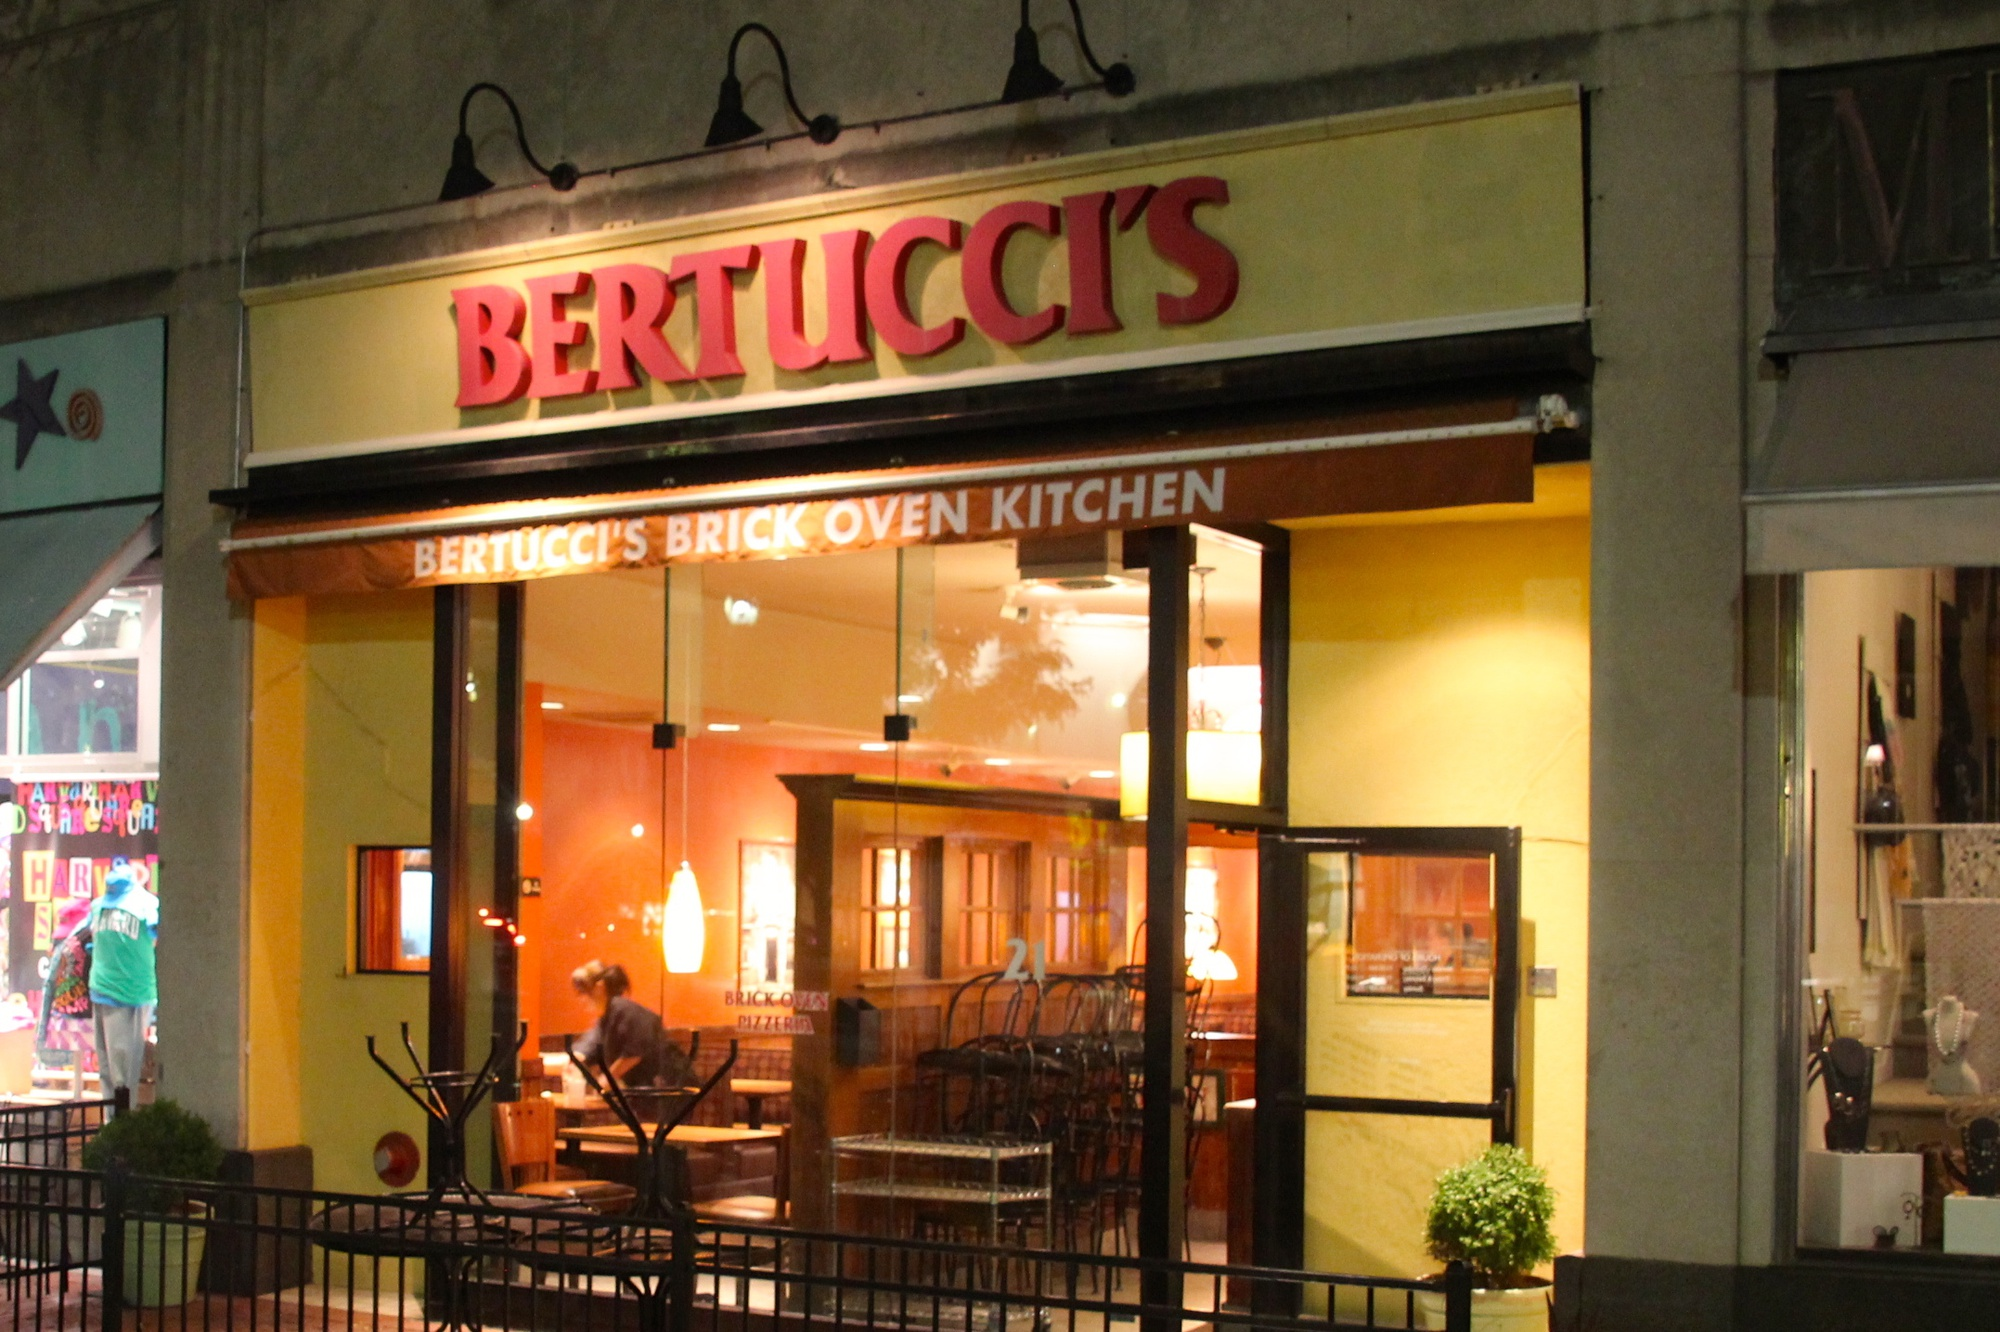 Bertucci's in Harvard Square still has its lights on Wednesday night as the last customers finish their meals. The Italian restaurant closed its doors for the final time on Wednesday.